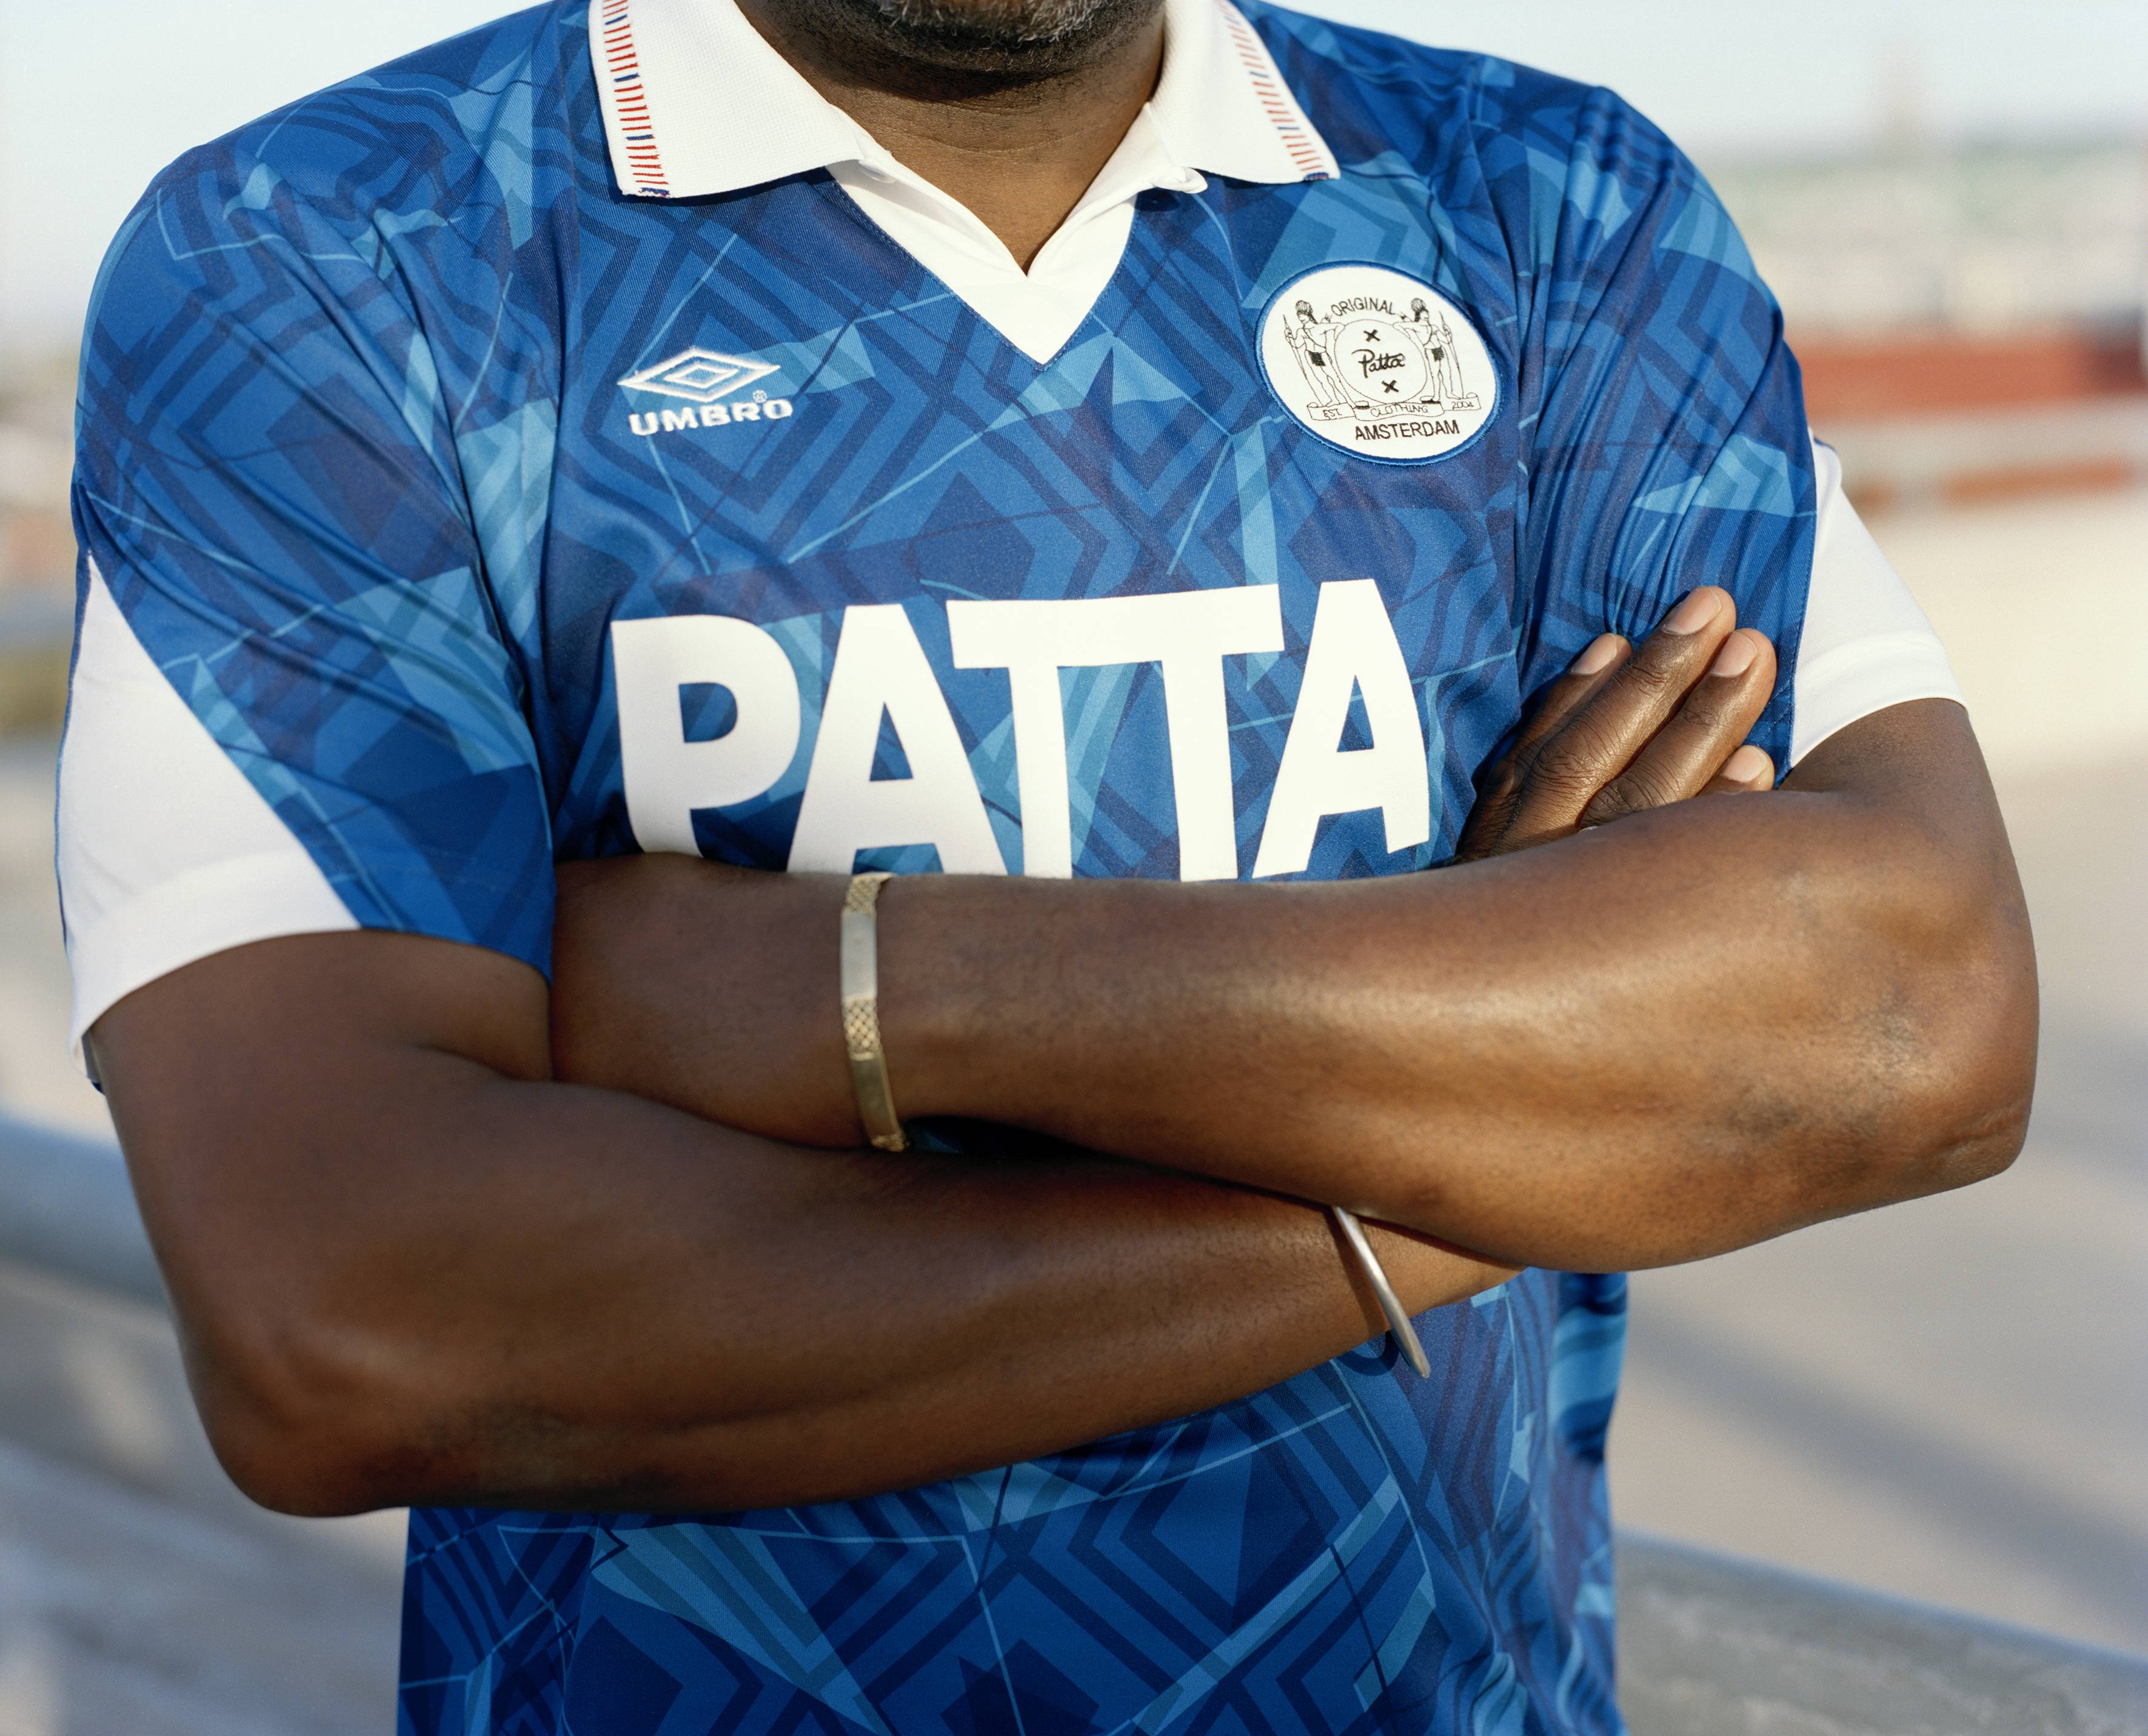 patta umbro jersey for sale